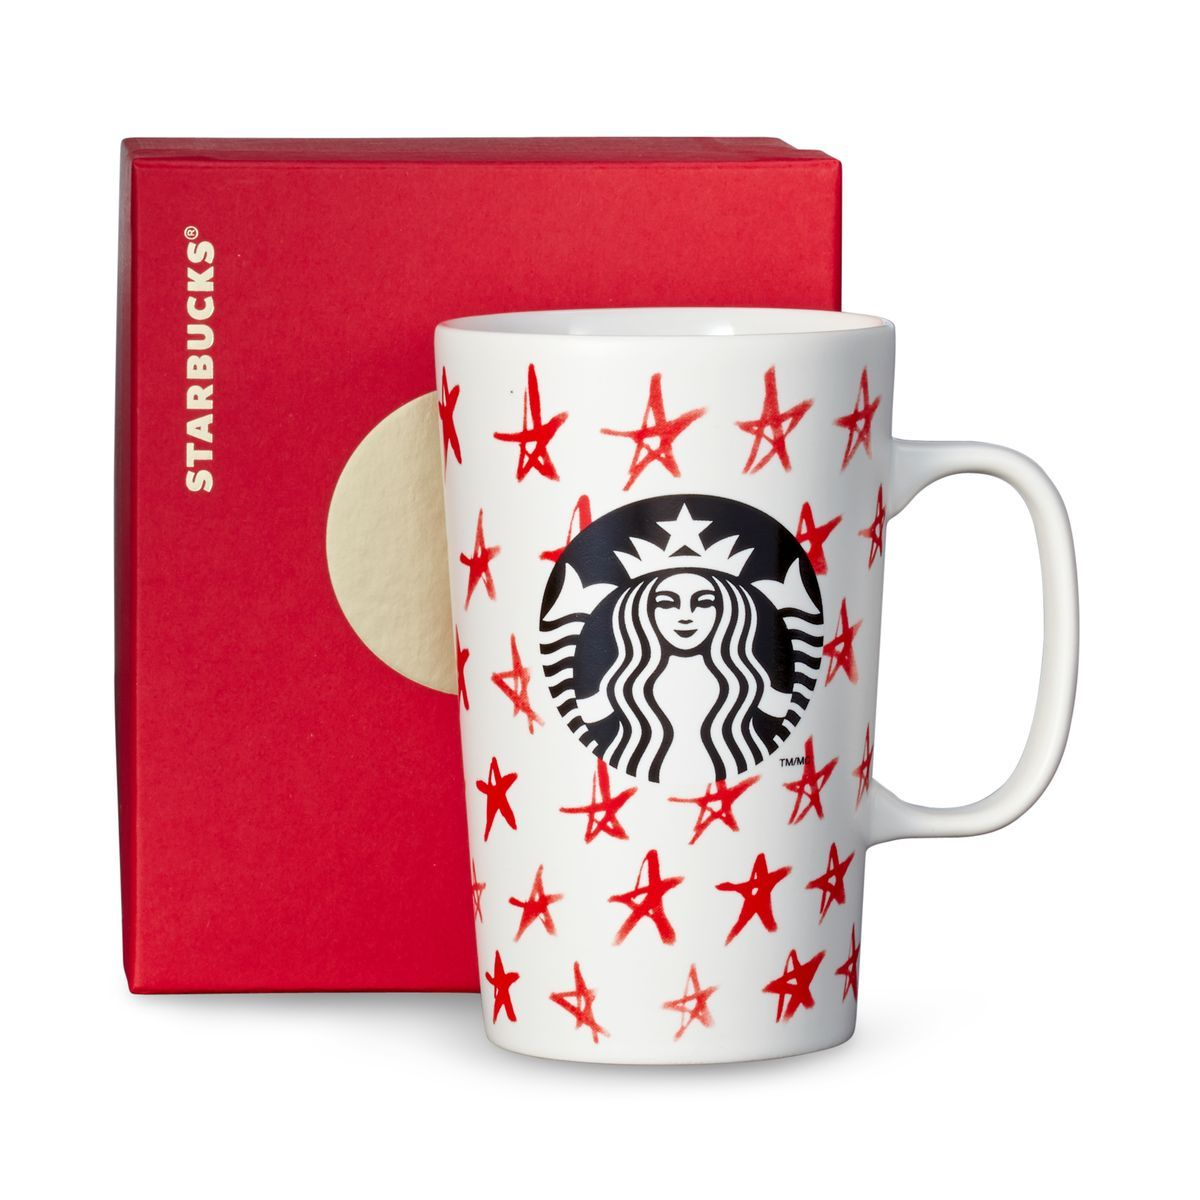 A ceramic coffee mug with a red star design. Part of our